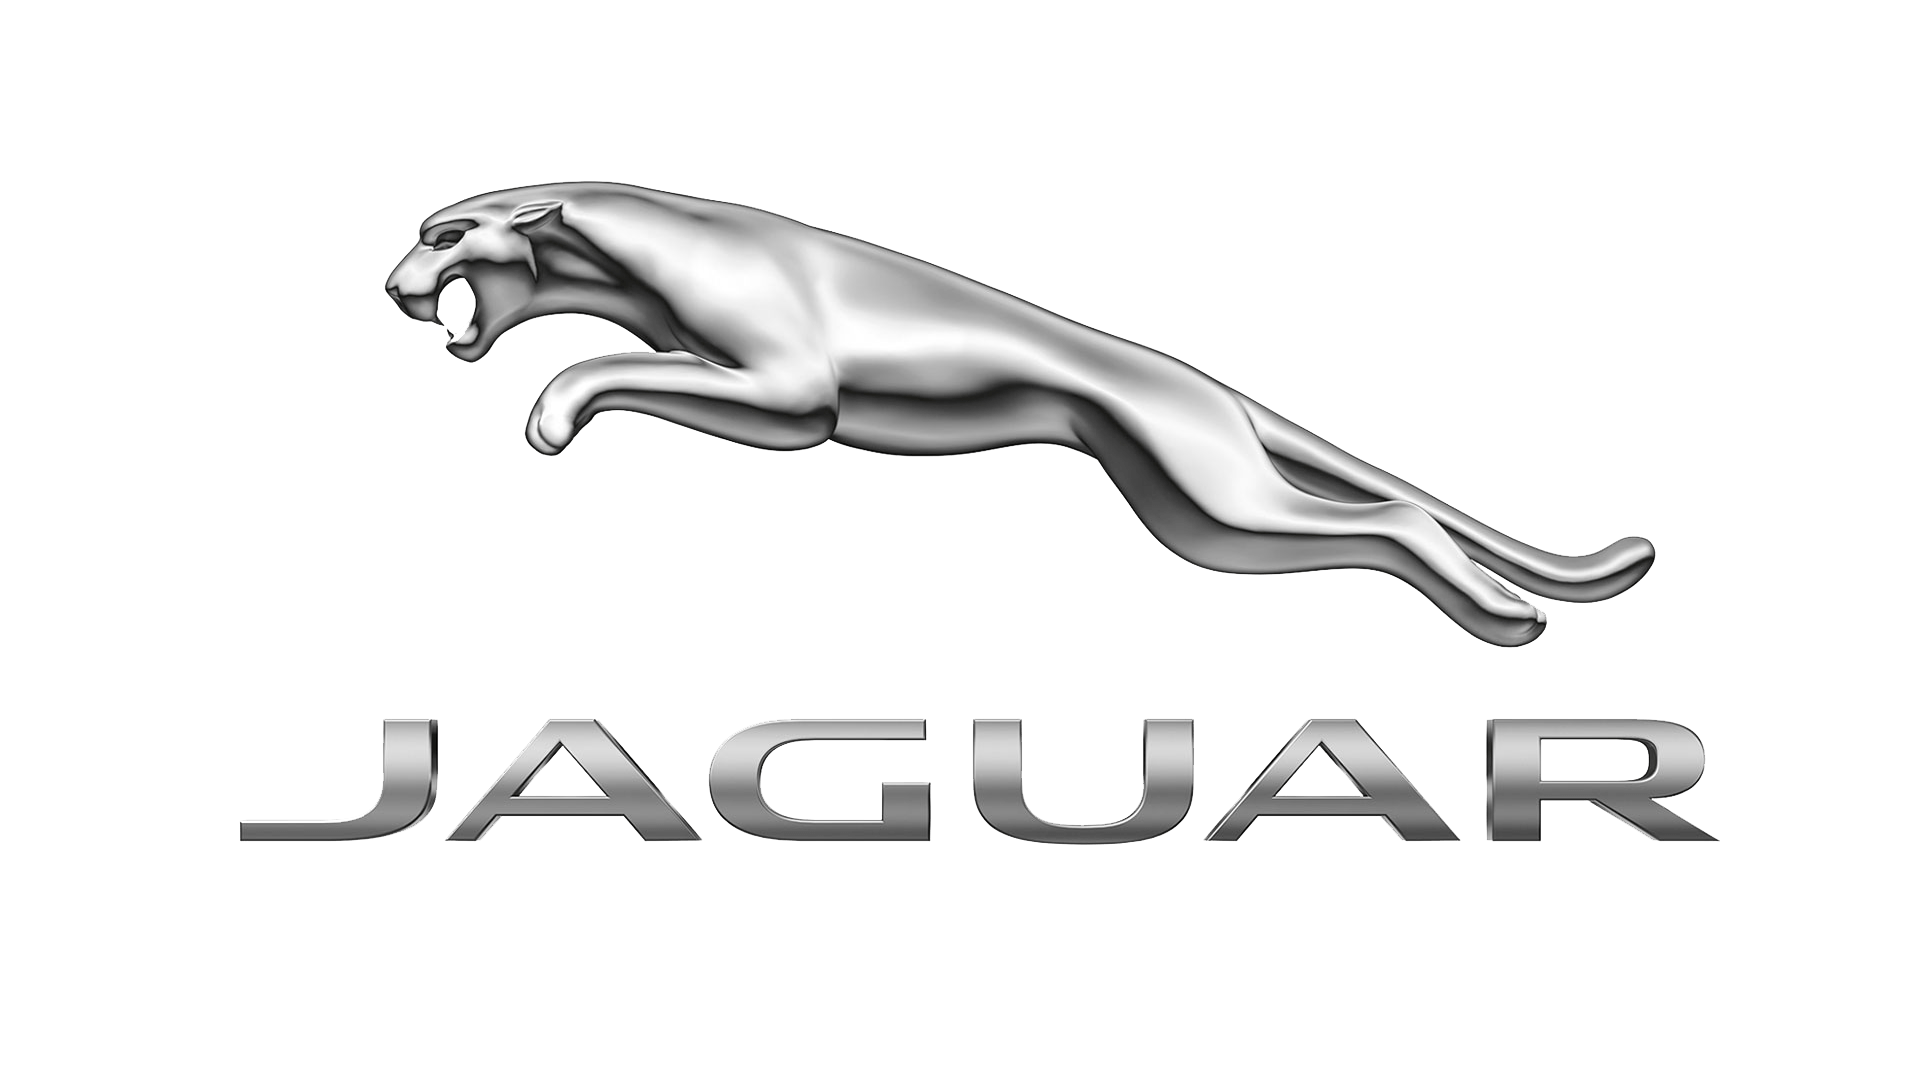 Car Logo Jaguar